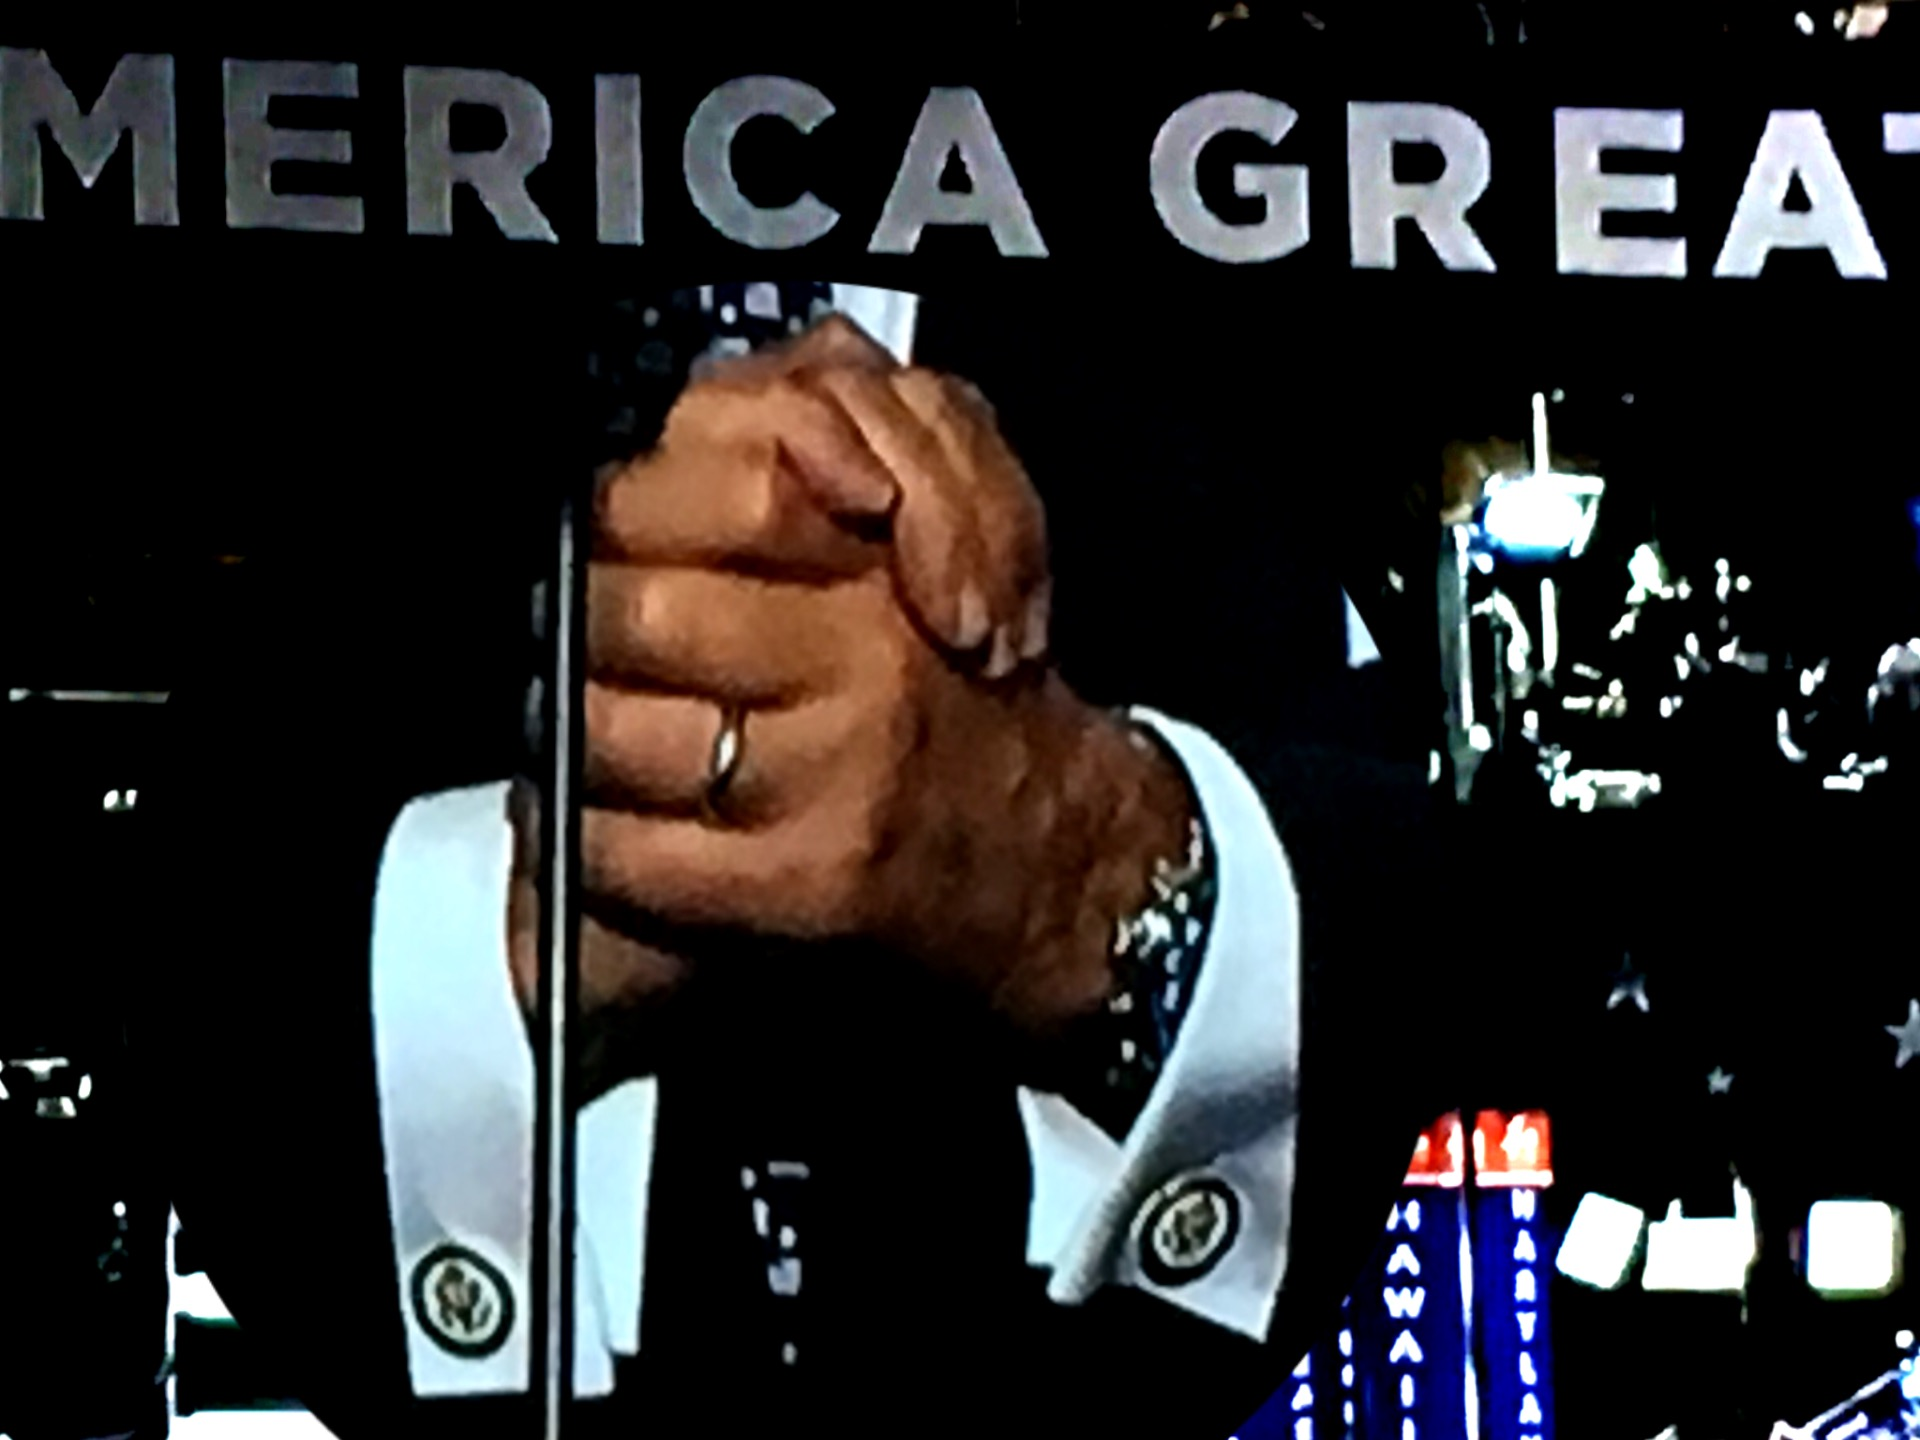 Rudy Giuliani speaks at the RNC. (Composite image by Biz Herman/GroundTruth)